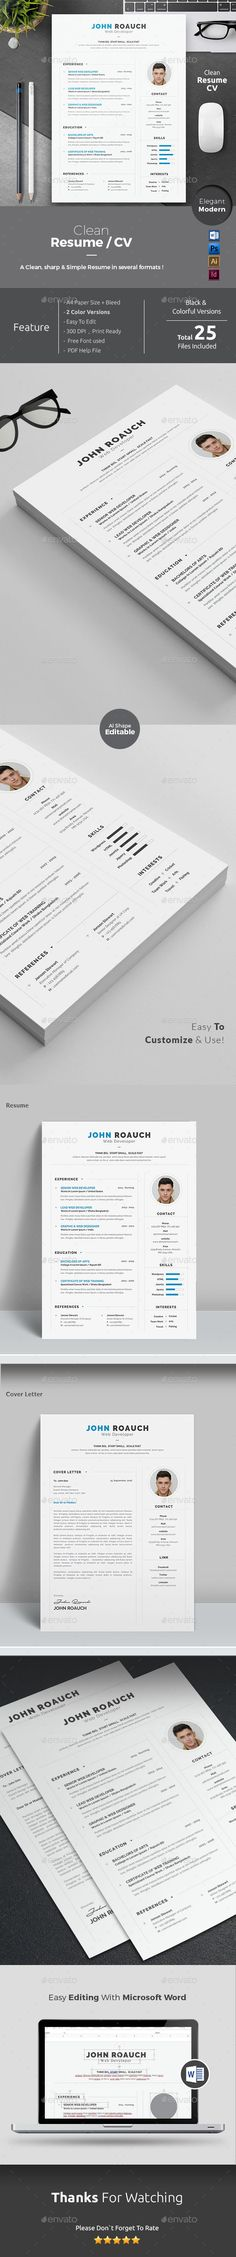 Battery - Creative Resume Template Creative, Creative resume and - photoshop resume template